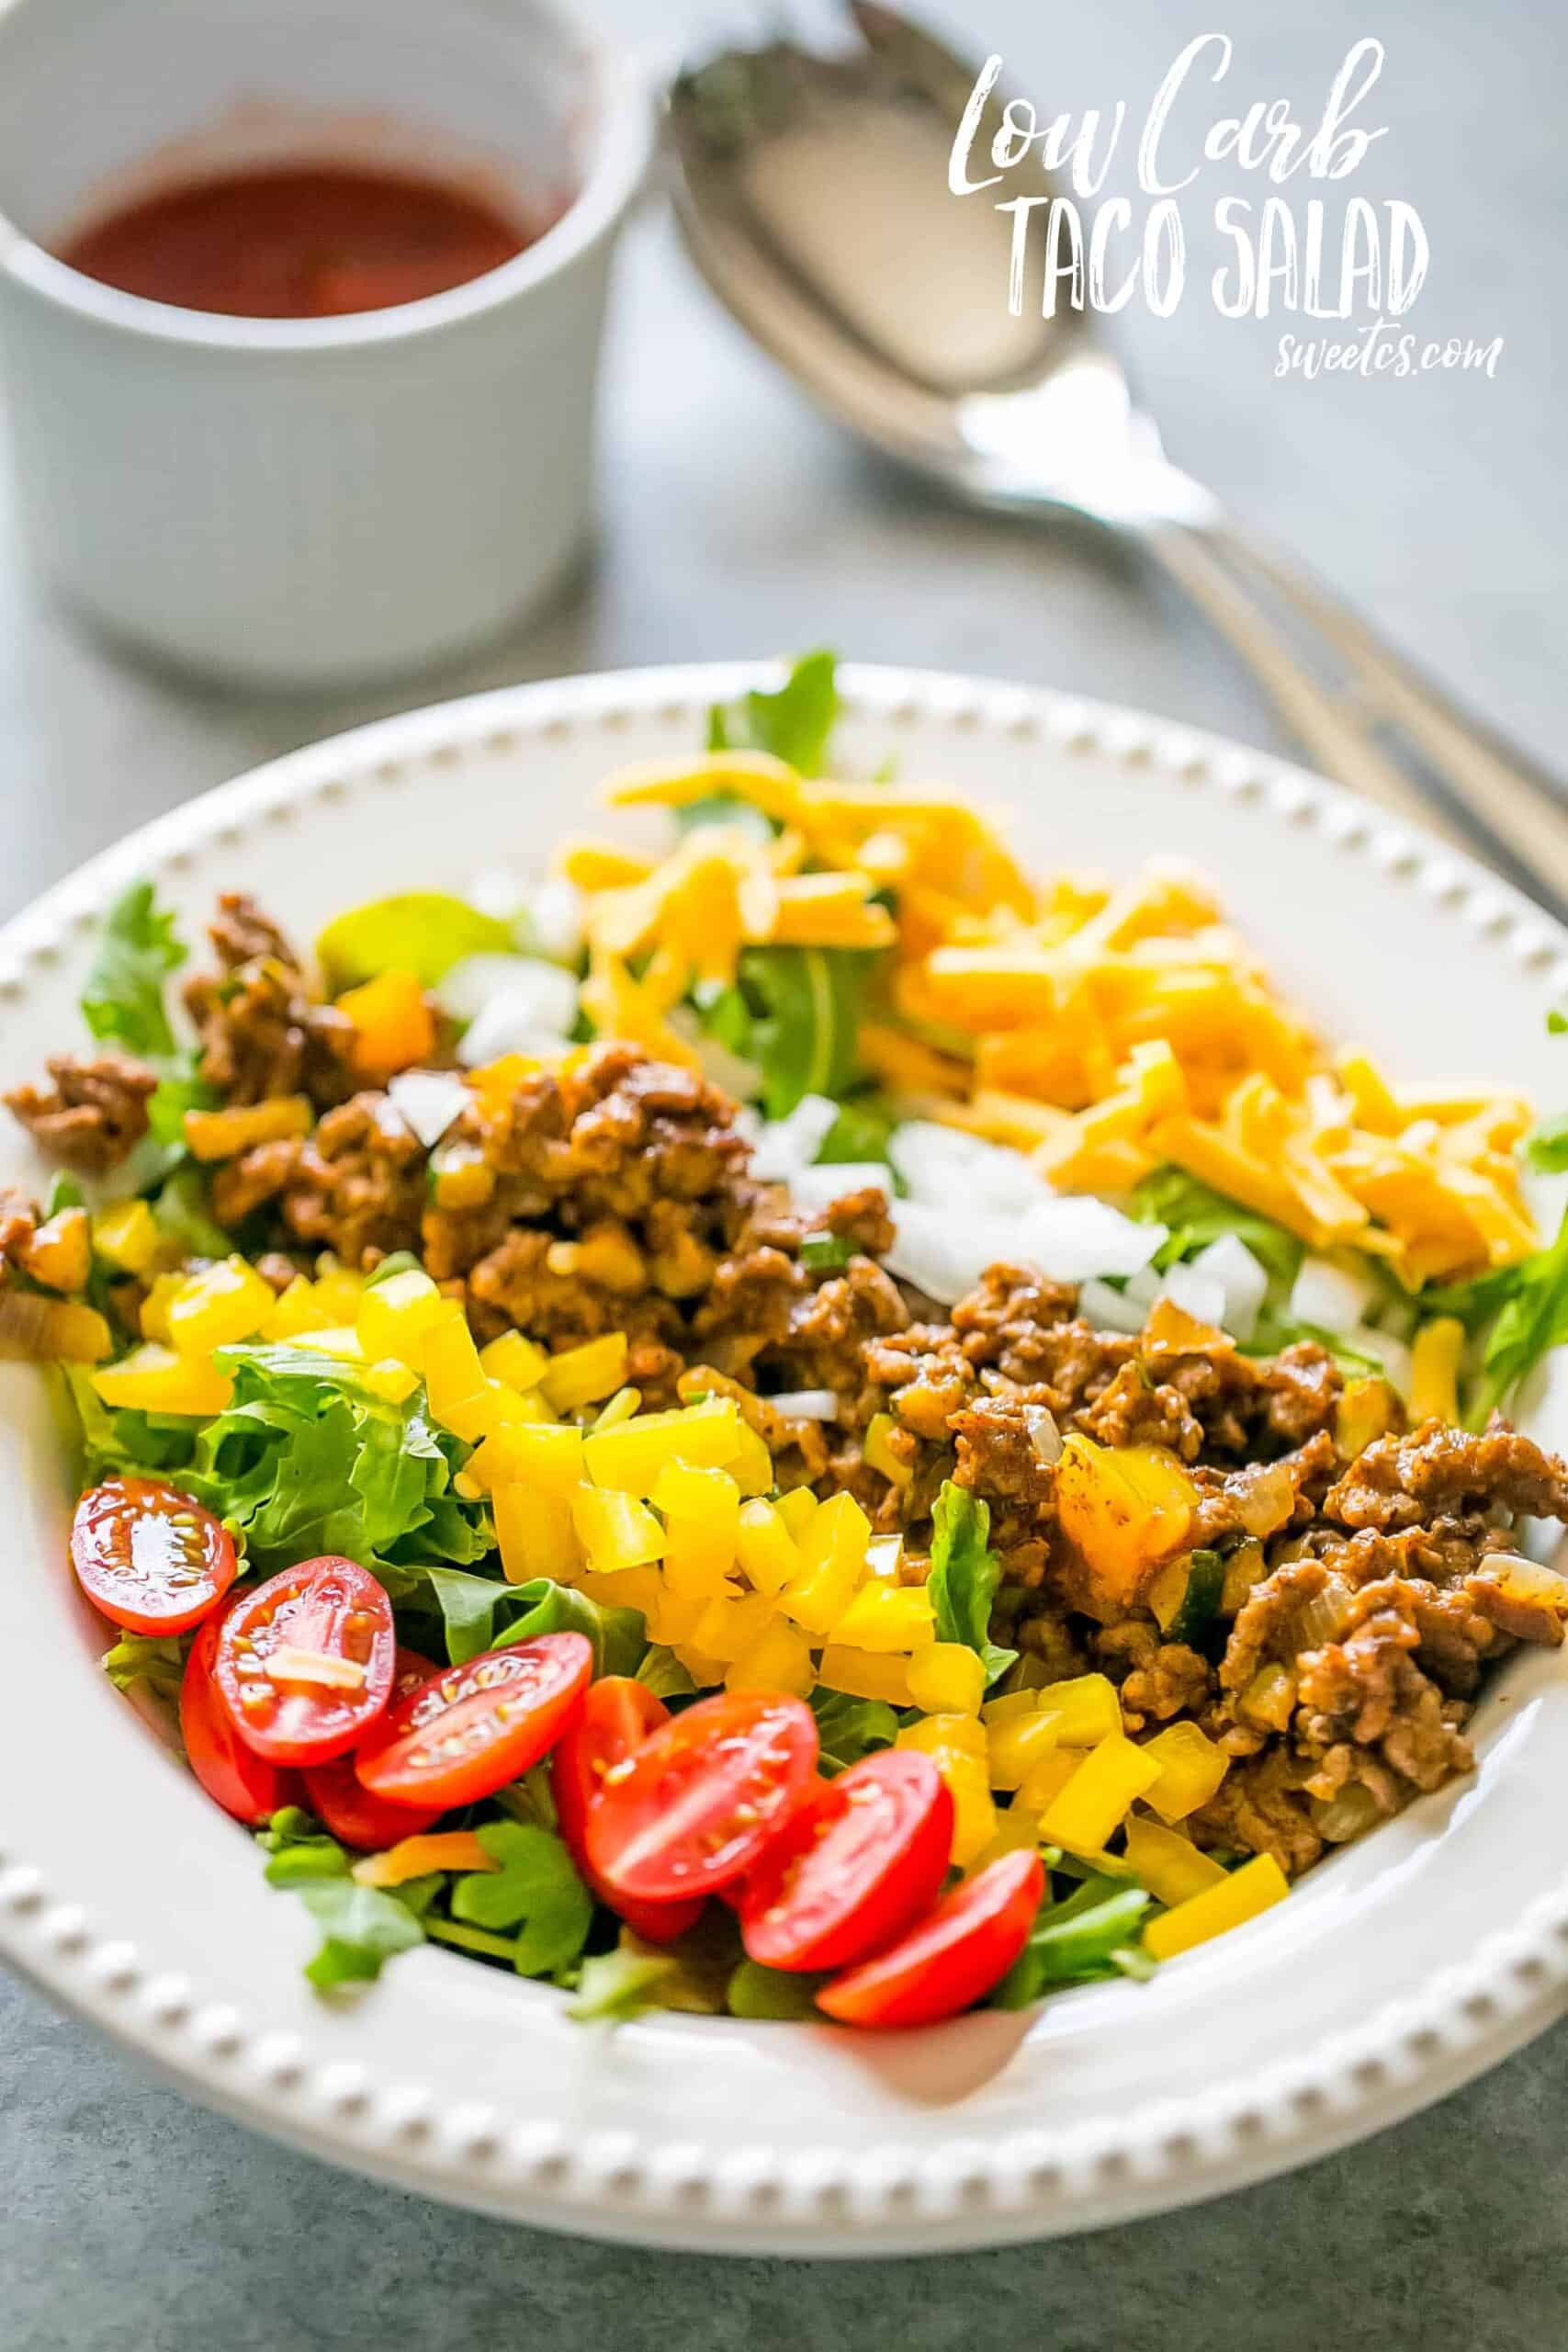 Taco Salad on a plate with rows of vegetables and ground meat over lettuce